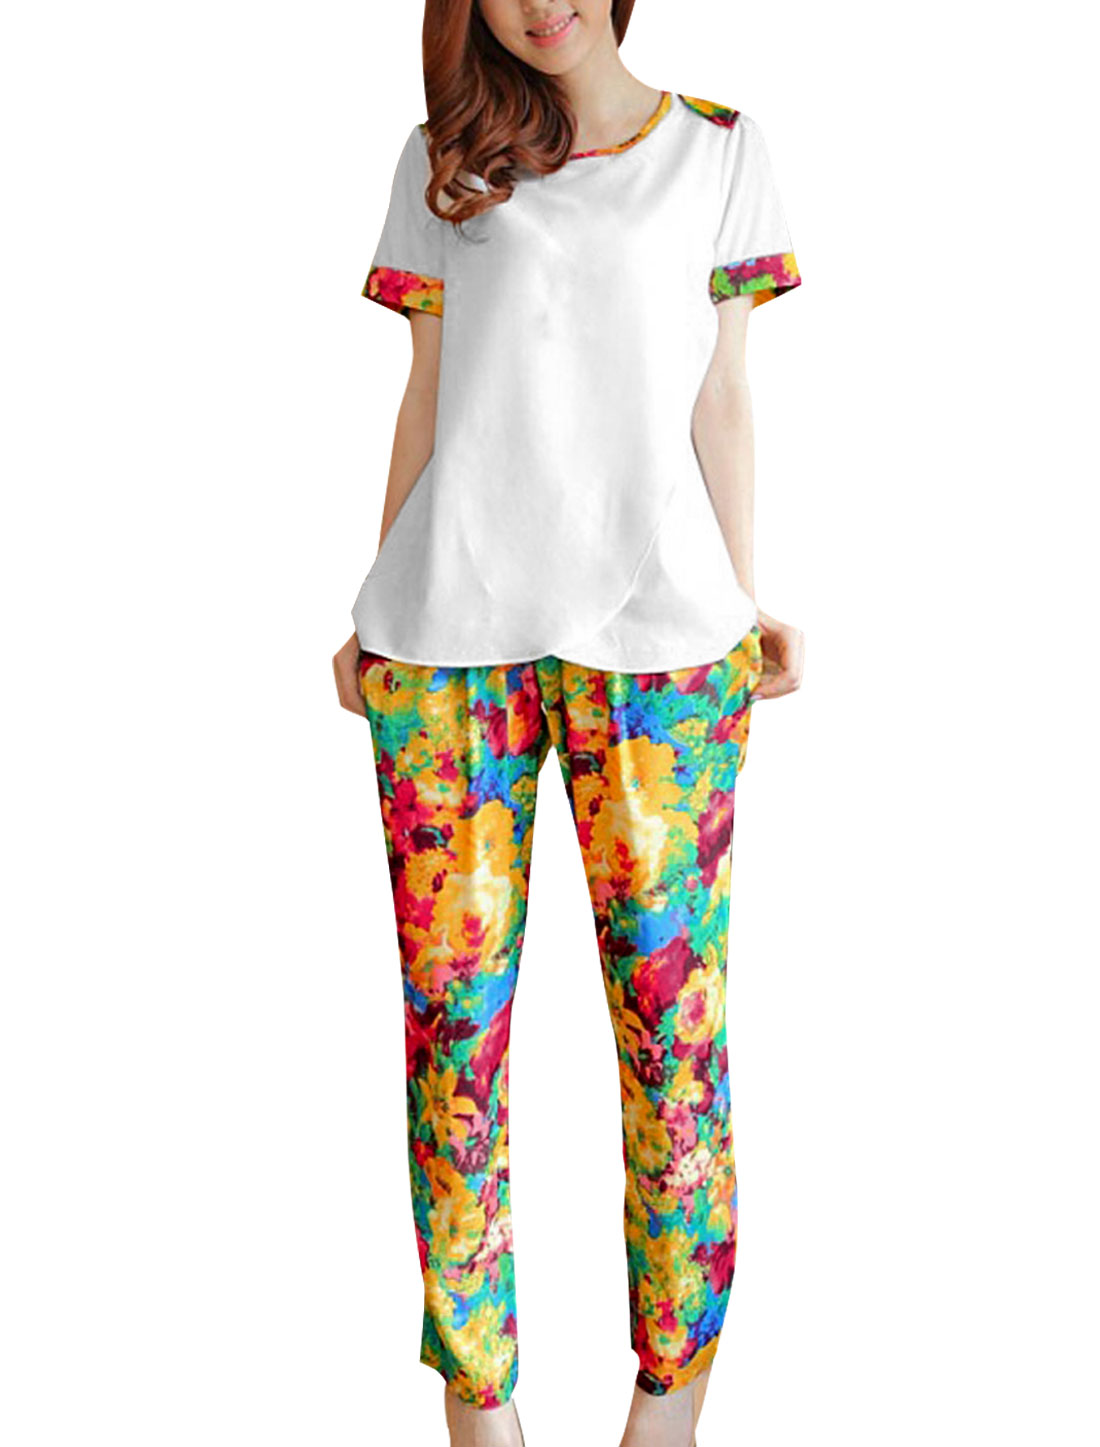 Women S White Round Neck Short Sleeve Top Shirt w Floral Pattern Pants